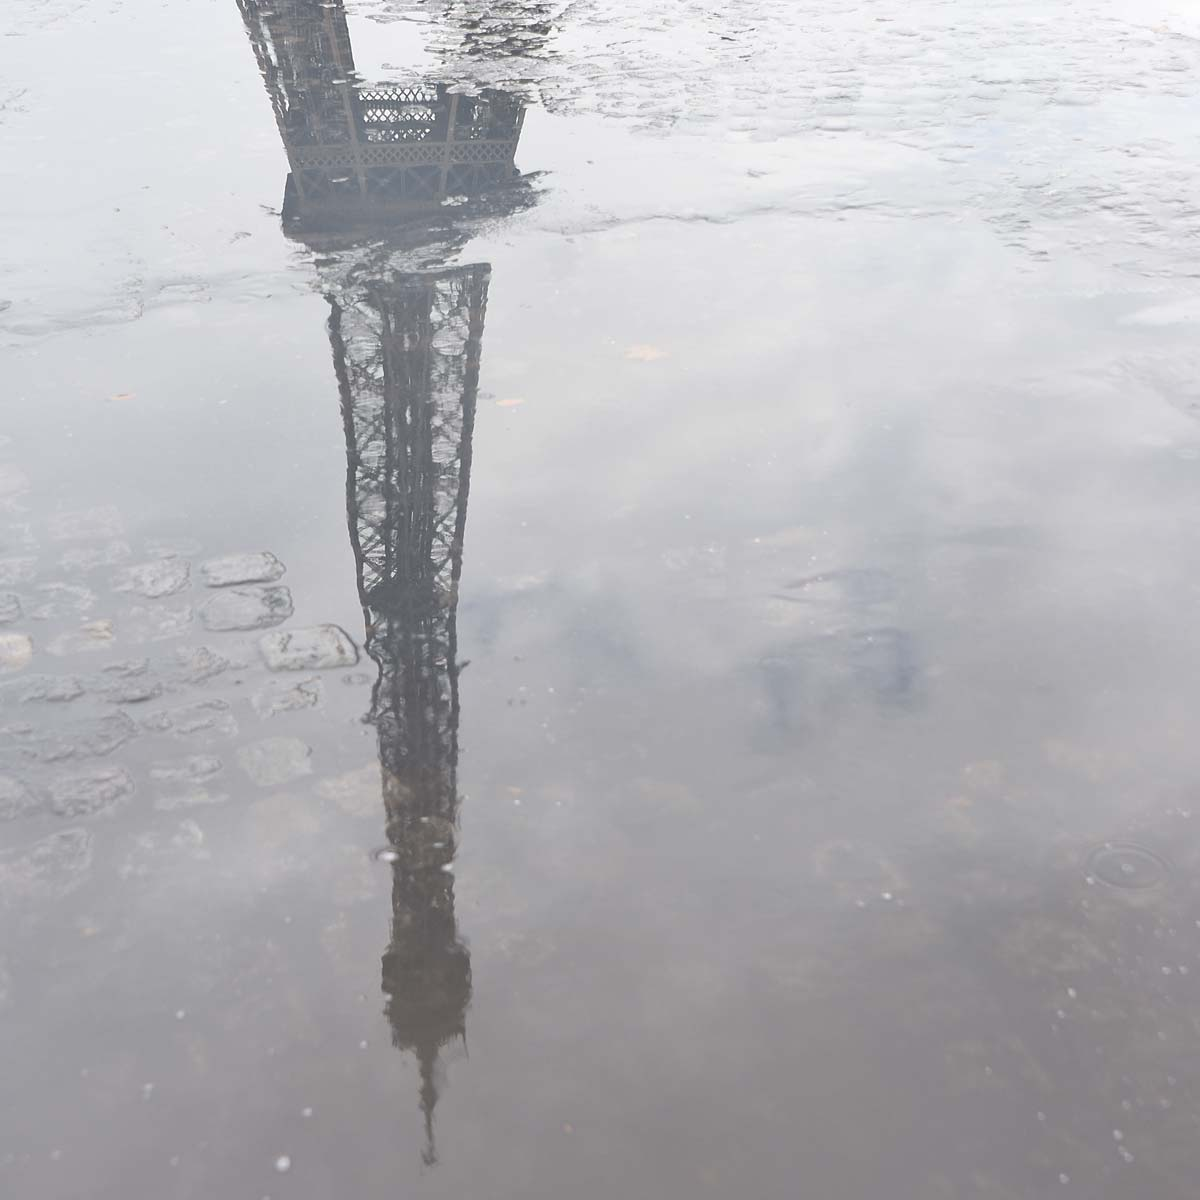 Eiffel Tower Reflected in Puddle by Jeanne Selep